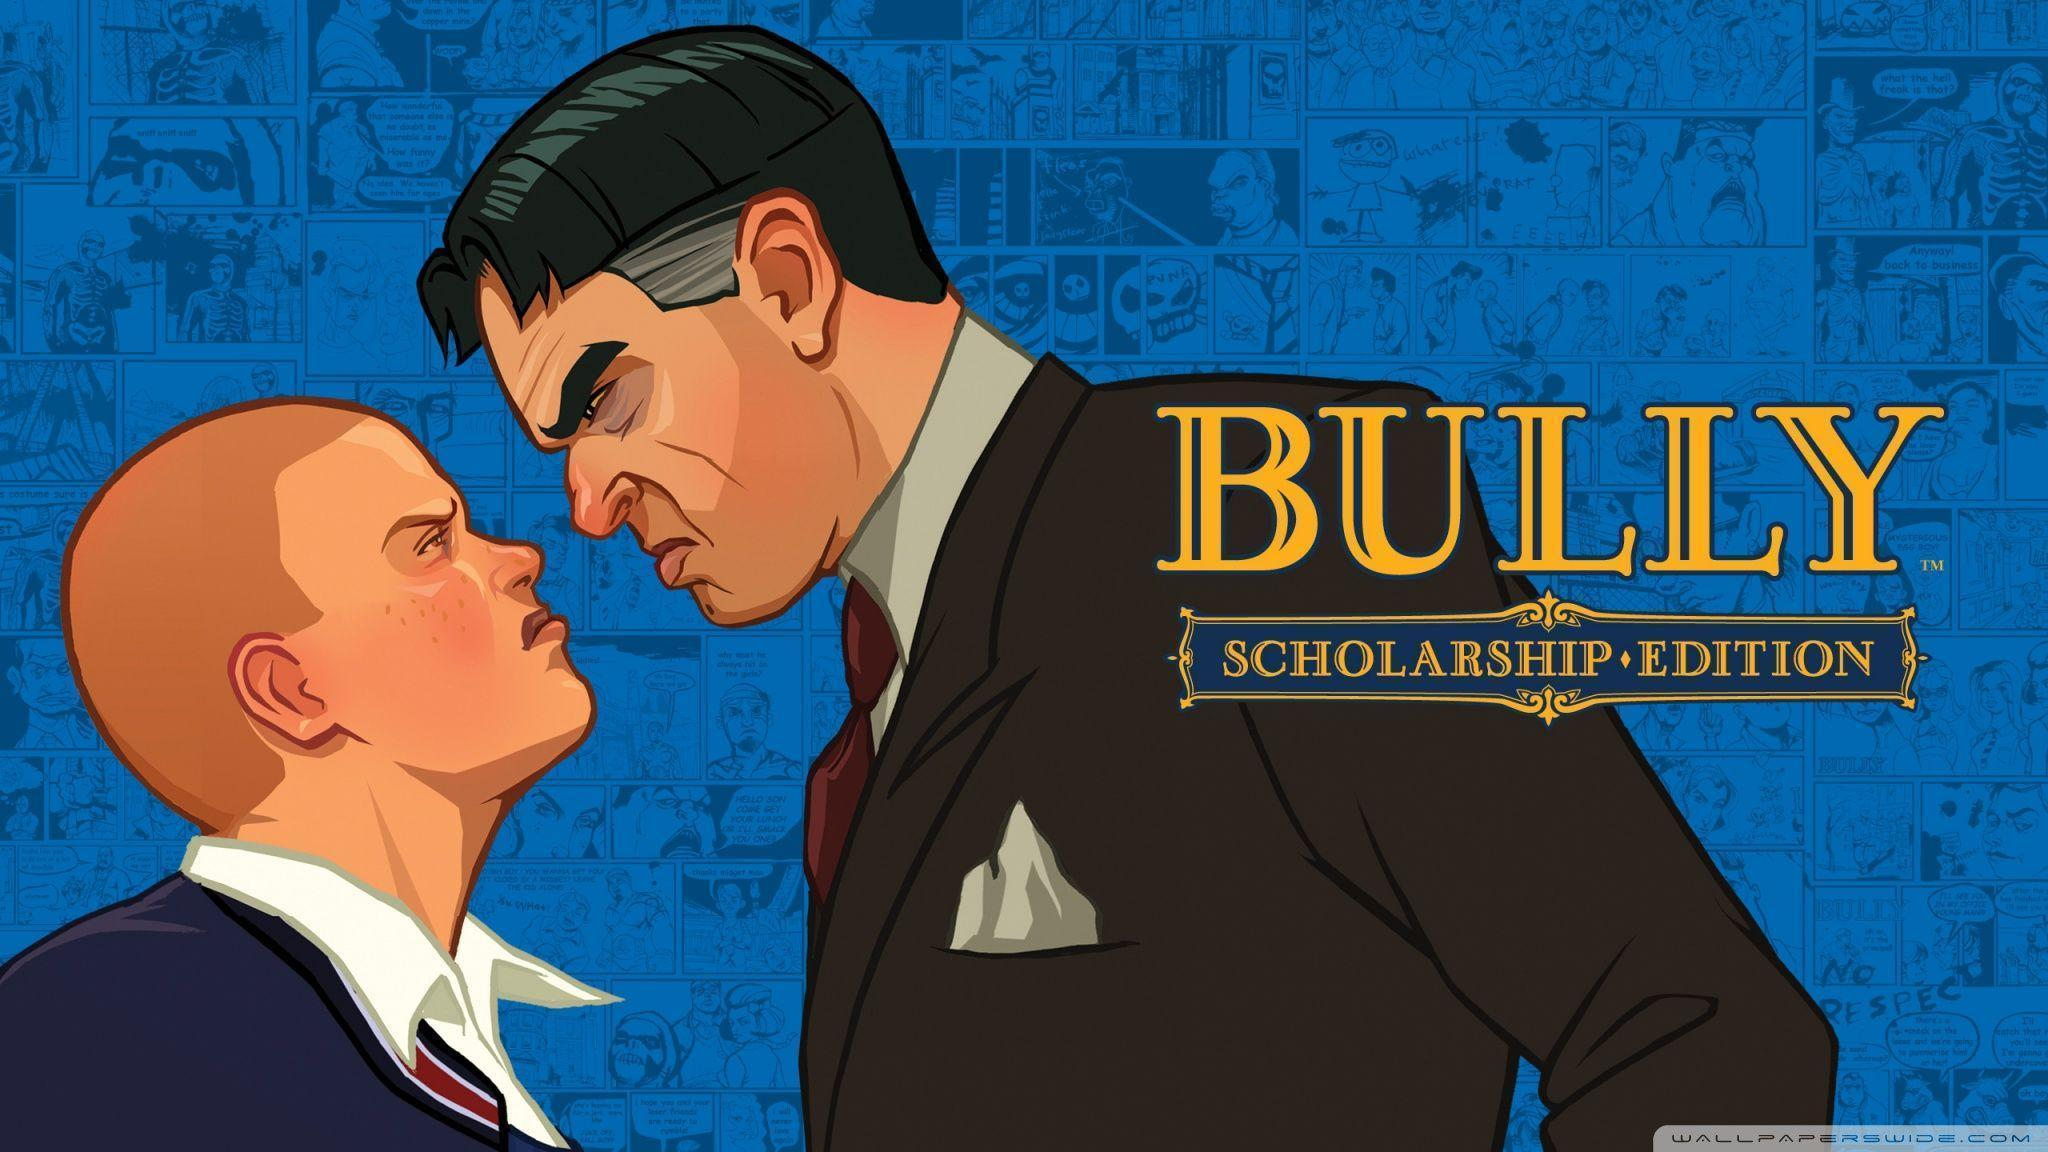 Bully composé par Shawn Lee